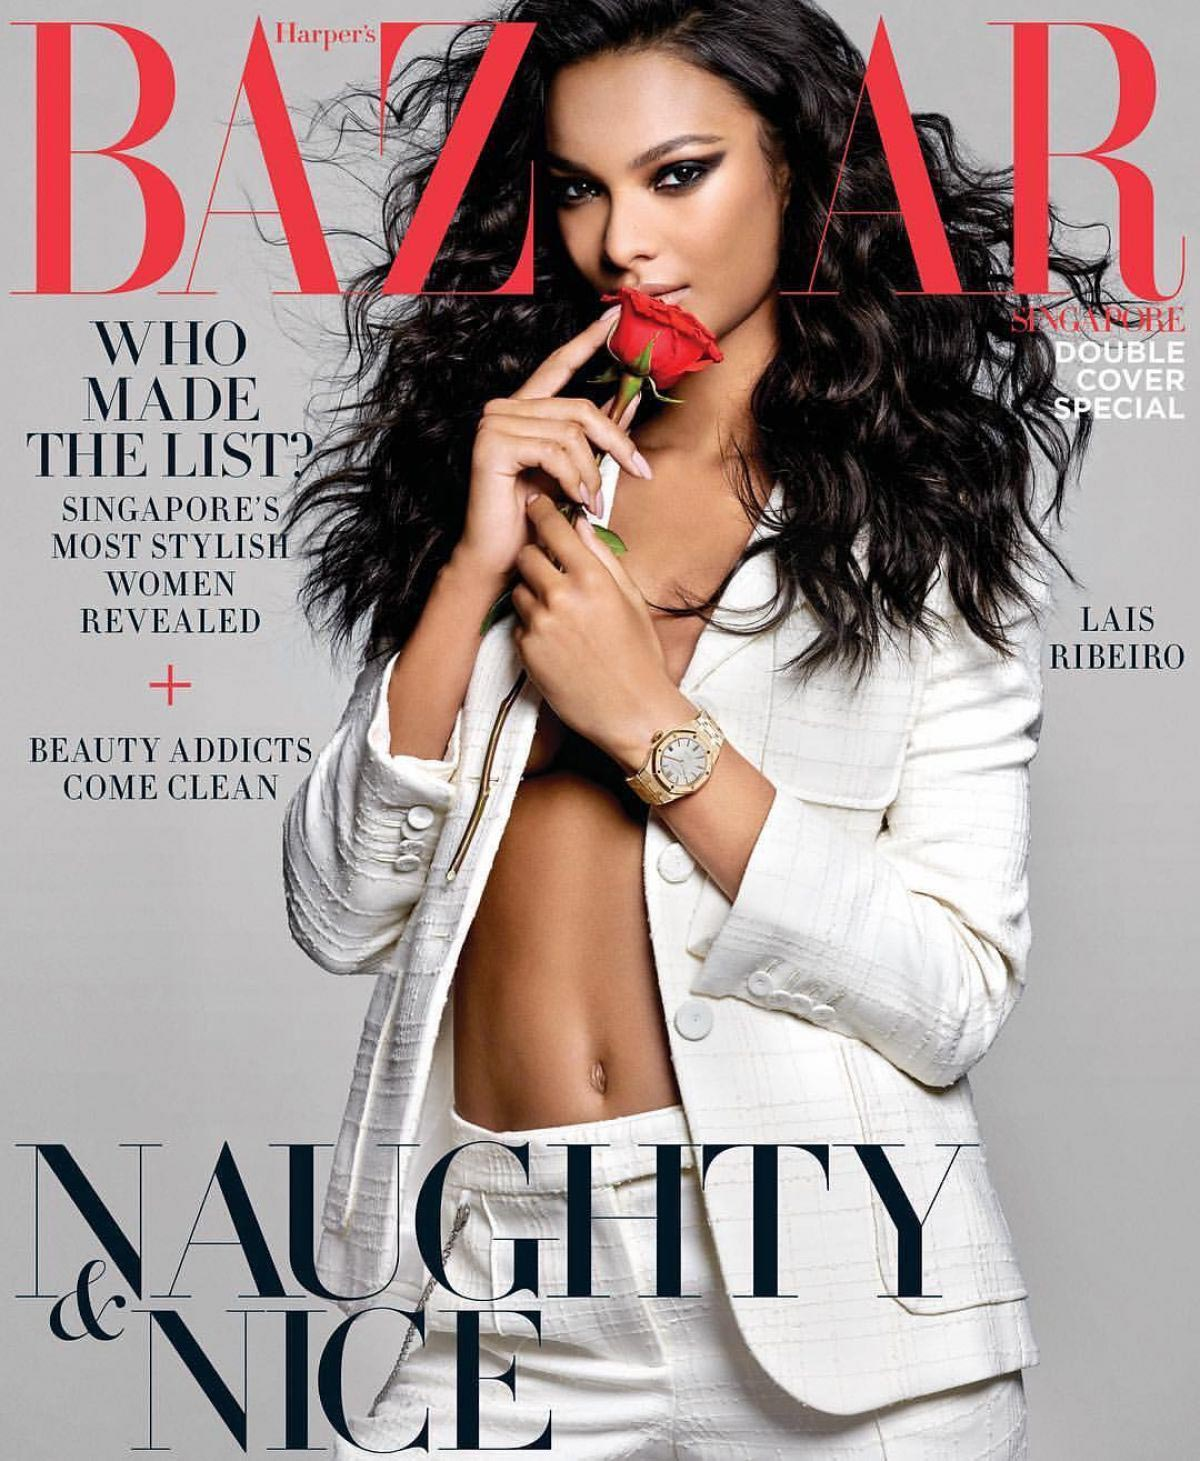 Lais Ribeiro on the Cover of Harper's Bazaar Magazine, Singapore December 2018 1